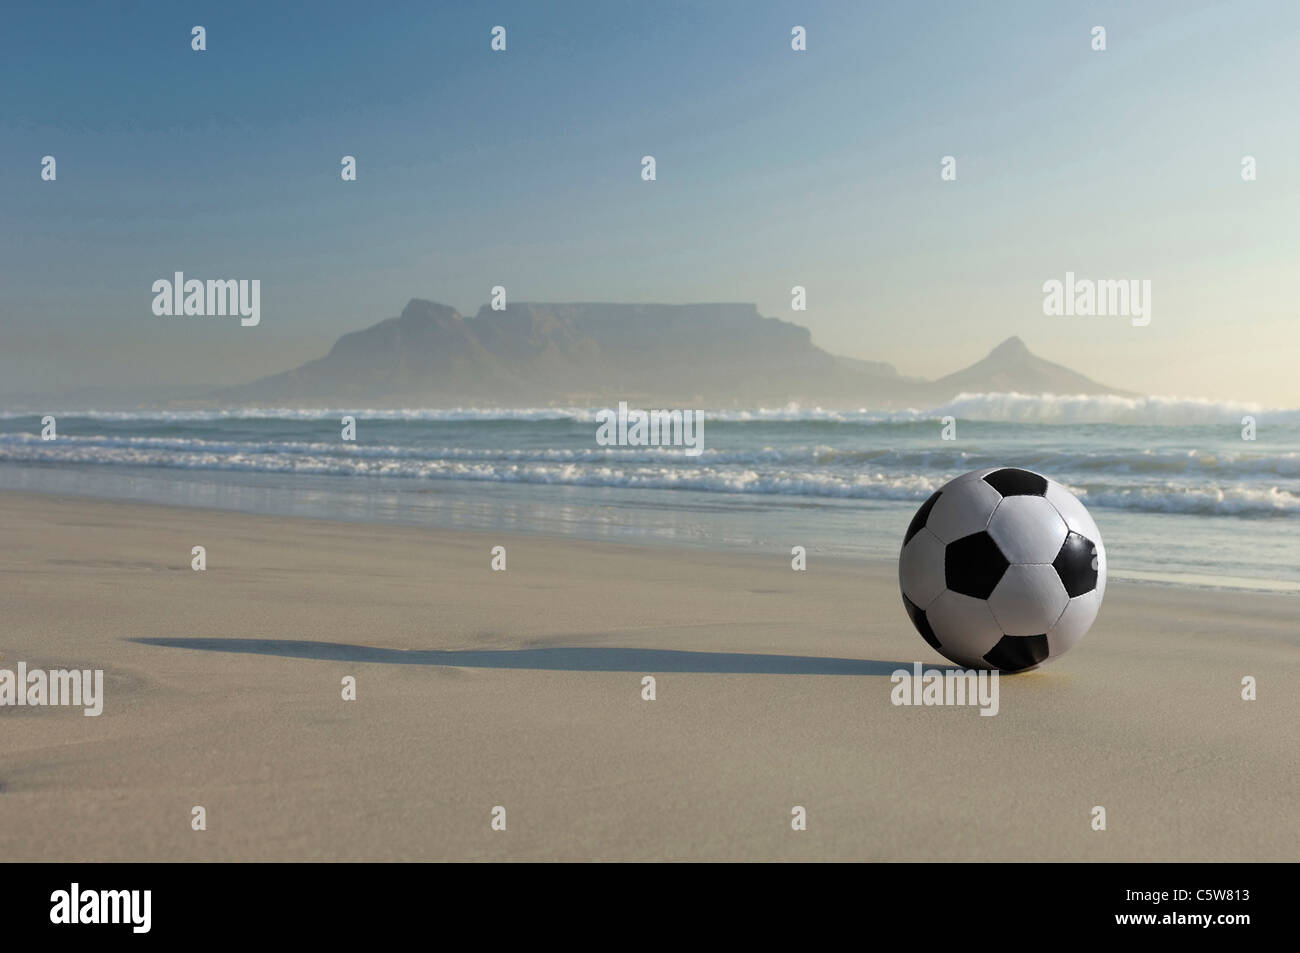 Africa, South Africa, Kapstadt, Soccer ball on beach - Stock Image